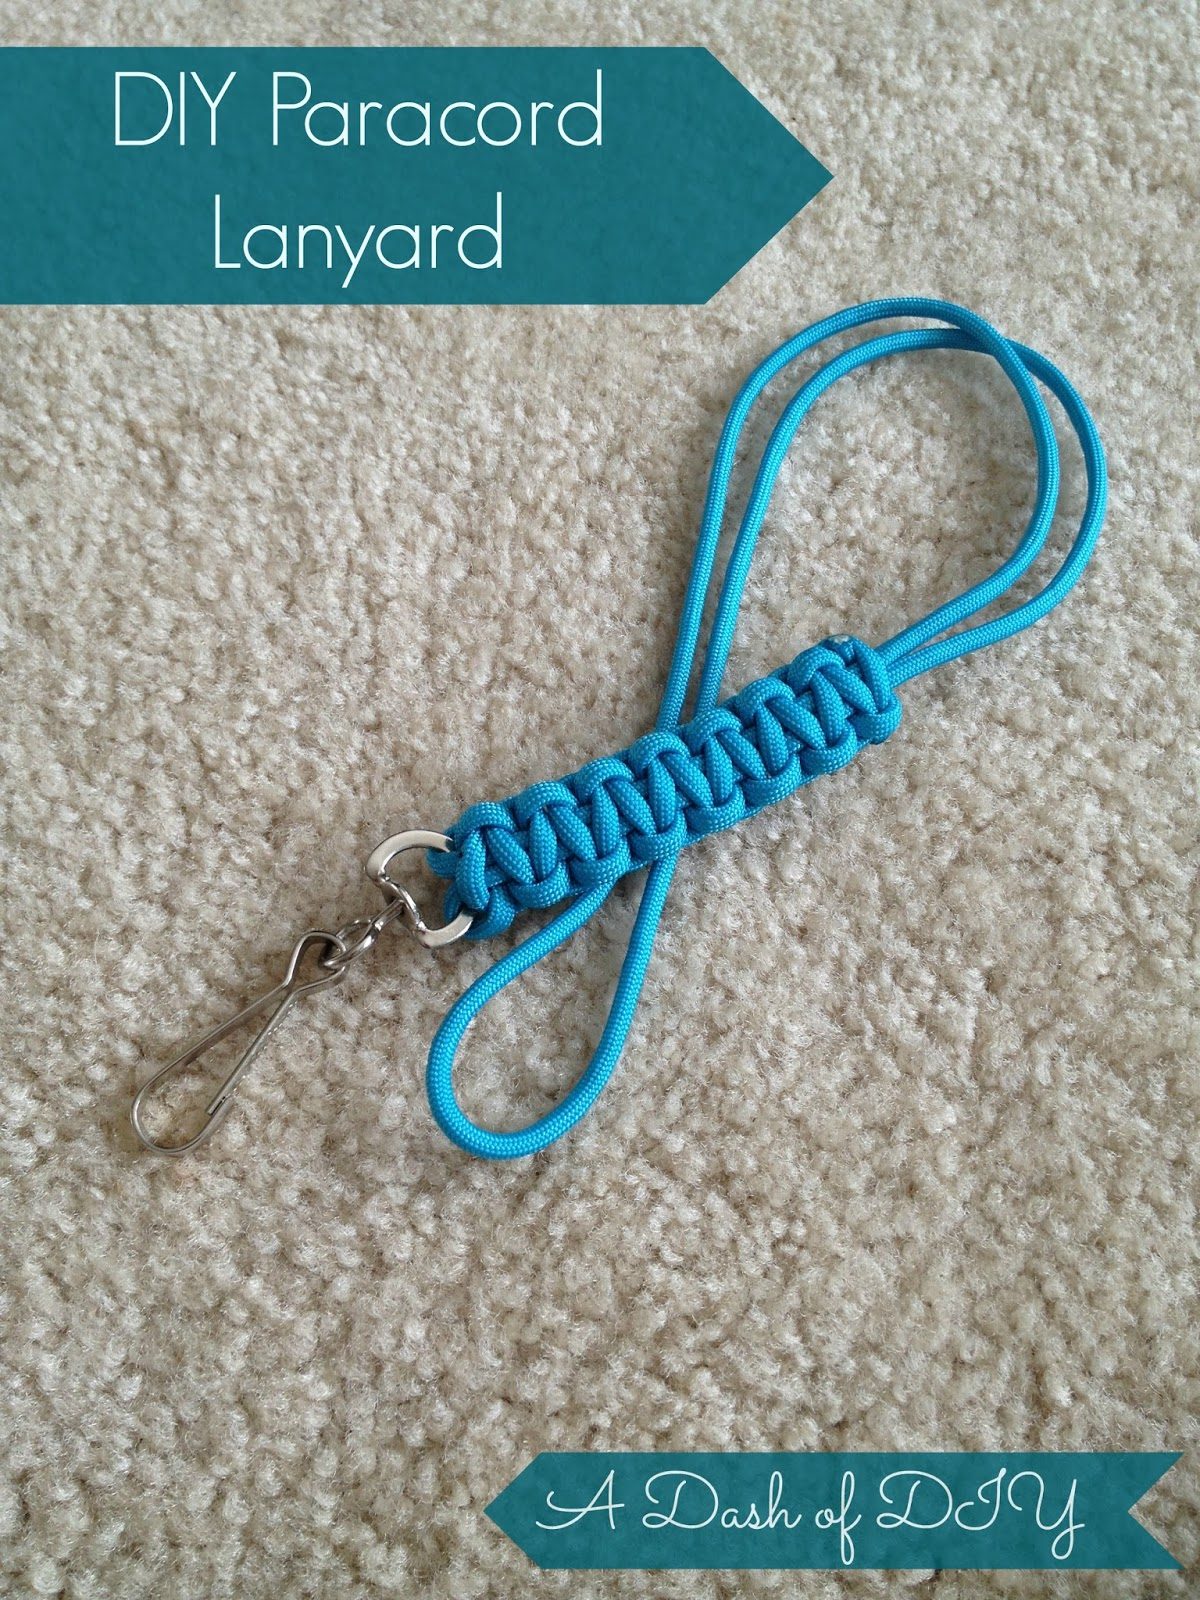 A dash of diy paracord lanyard for How to make a paracord lanyard necklace